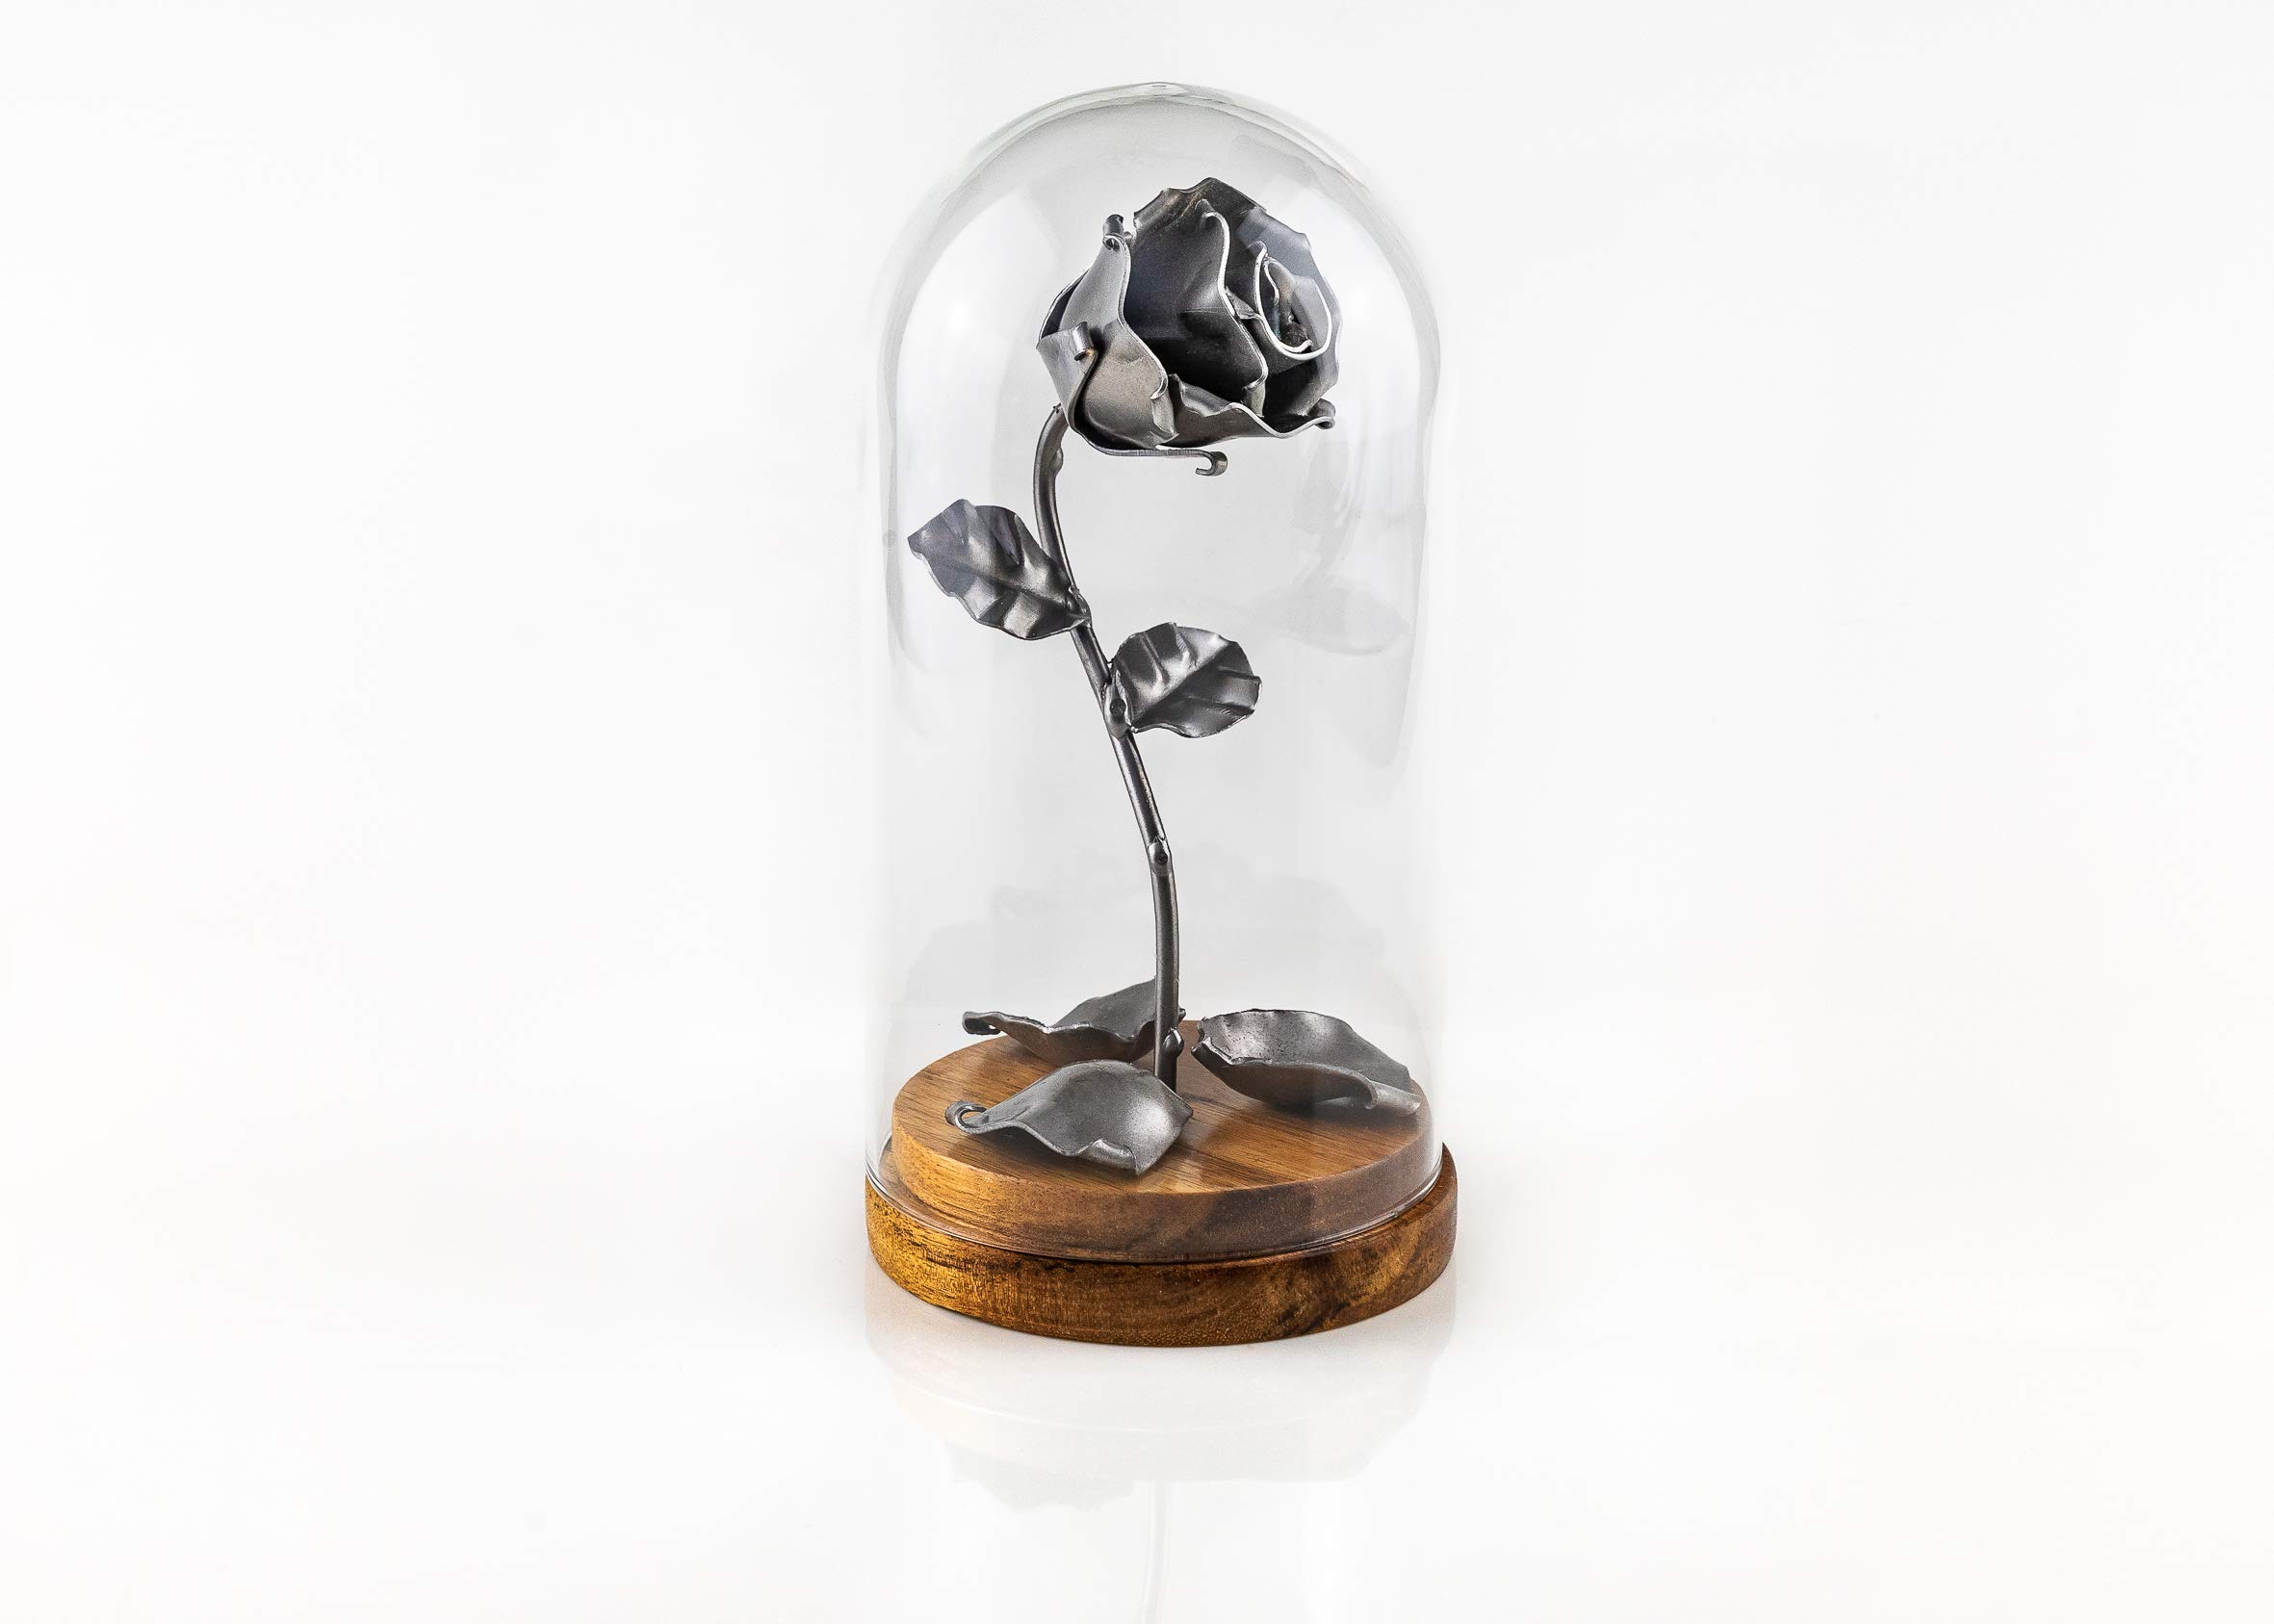 silk flower arrangements eternal rose of wrought iron beauty and the beast with fallen petals and in glass dome on wooden base